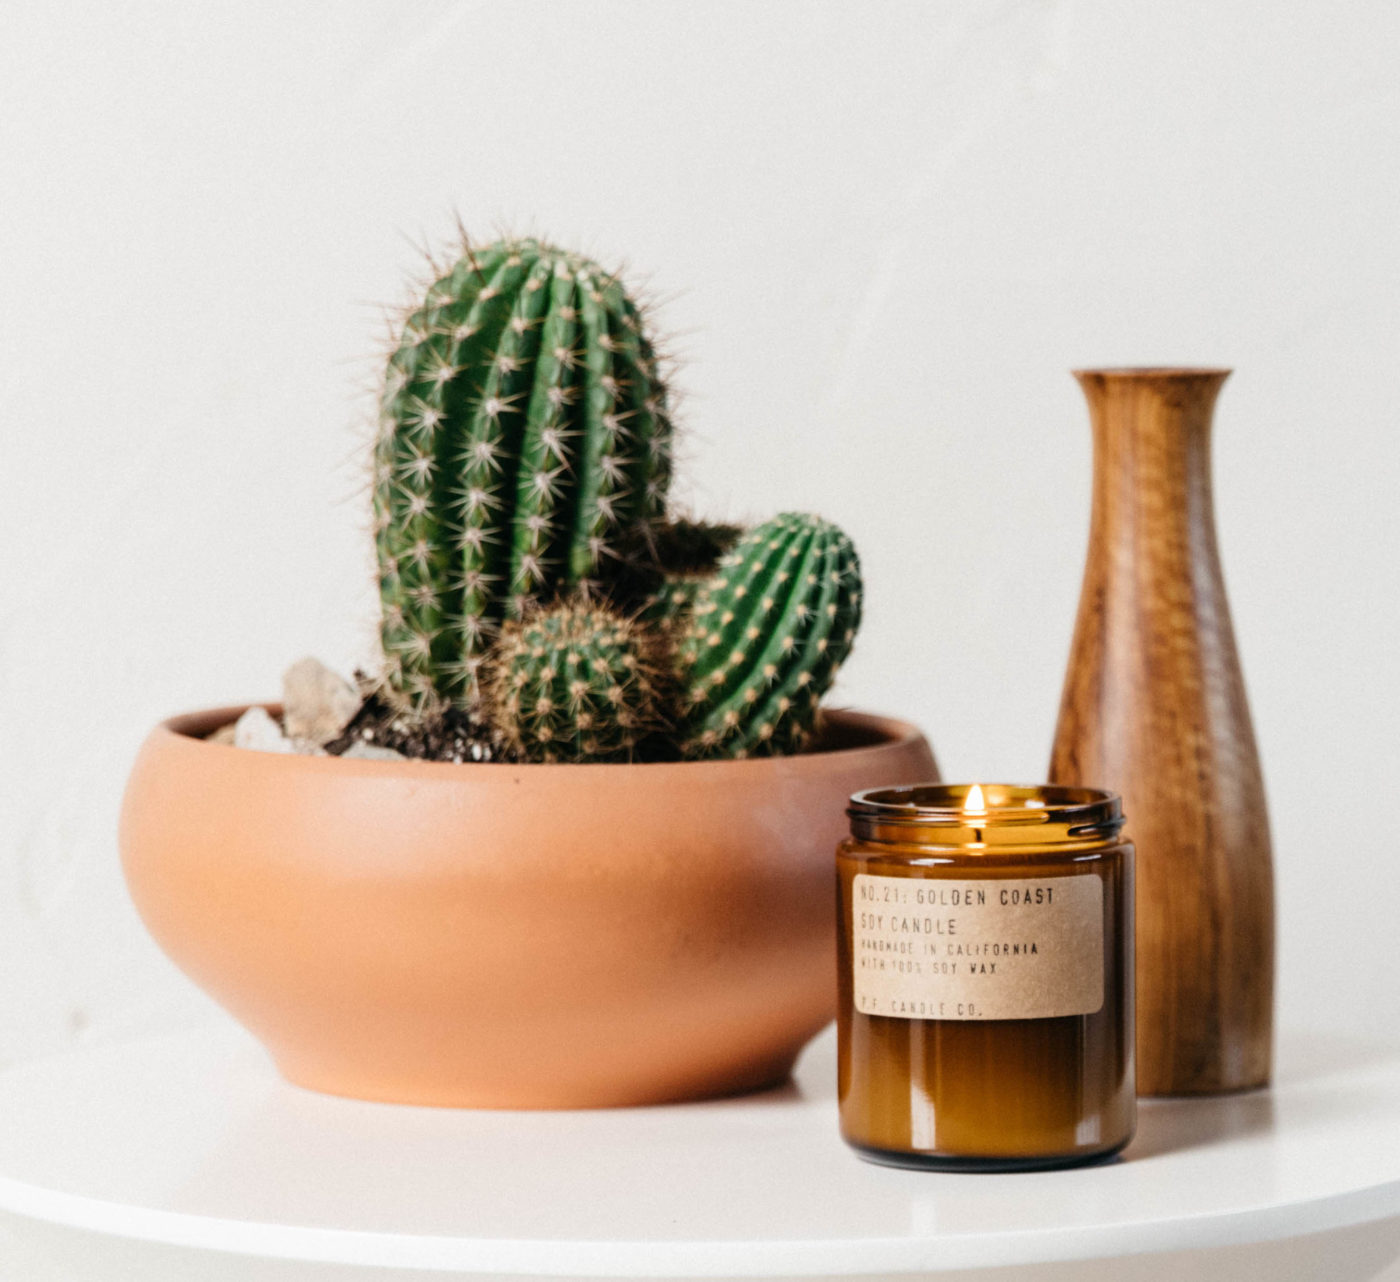 pf golden coast scented candle beside cactus